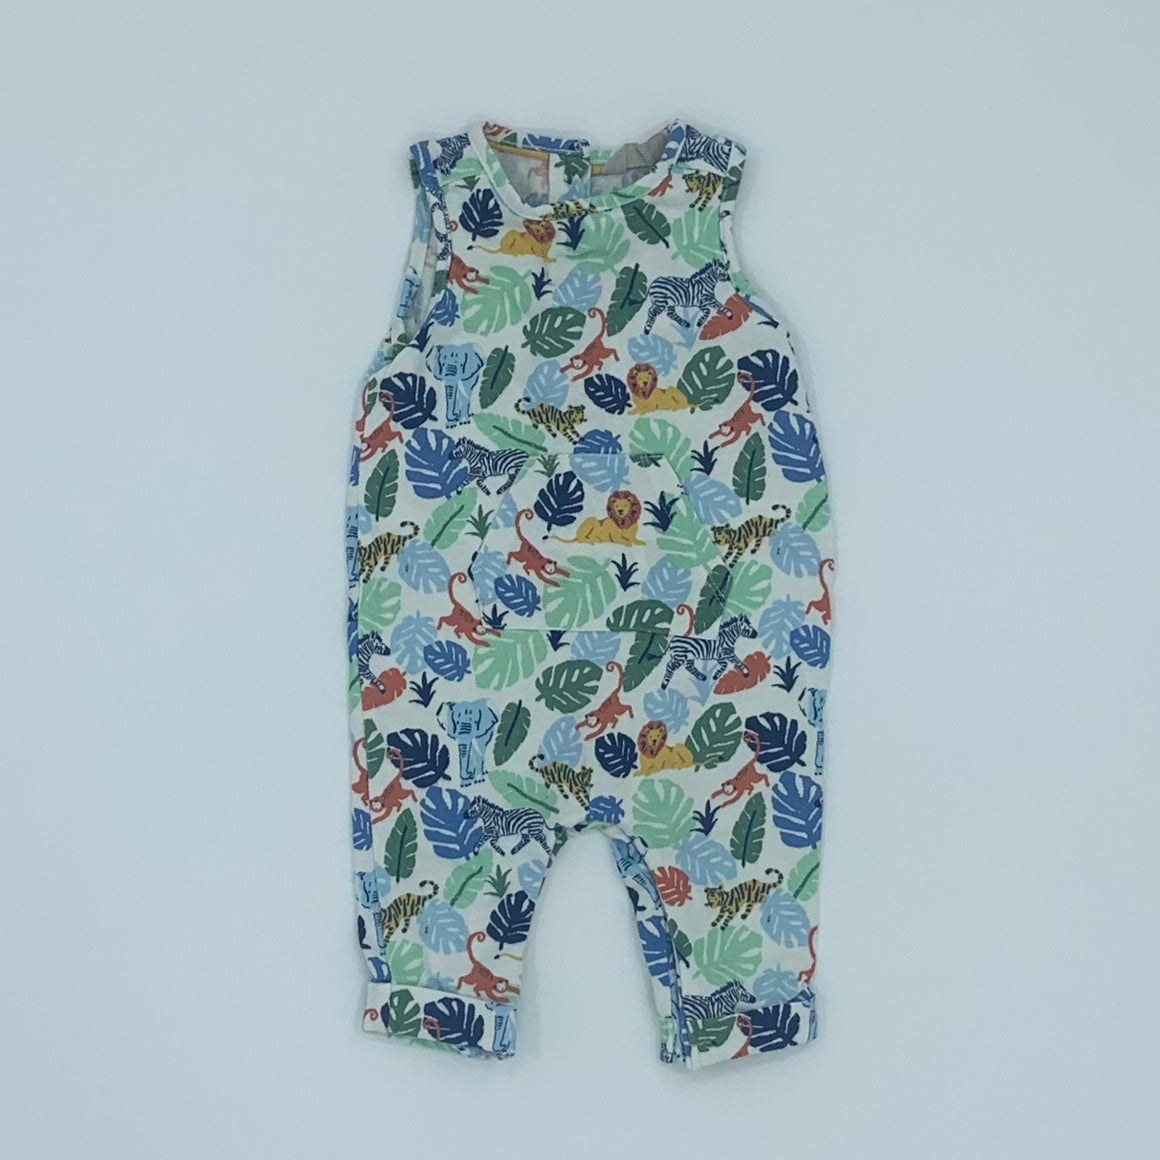 Gently Worn John Lewis jungle romper dungarees size 0-3 months